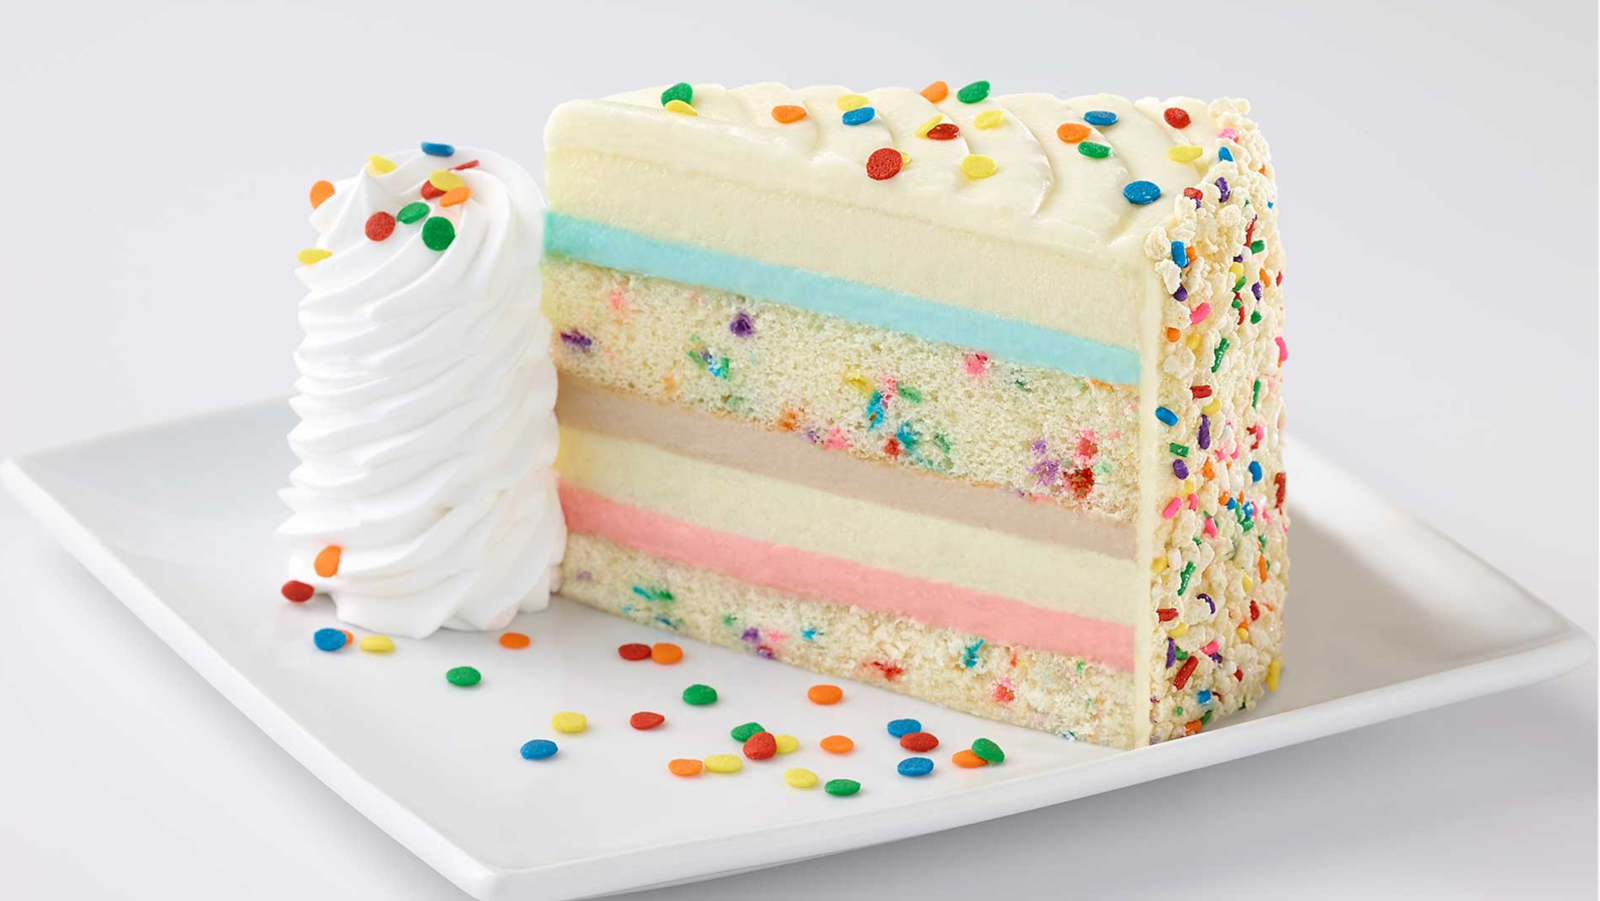 The Cheesecake Factory Just Released A New Flavor And We Tried It So